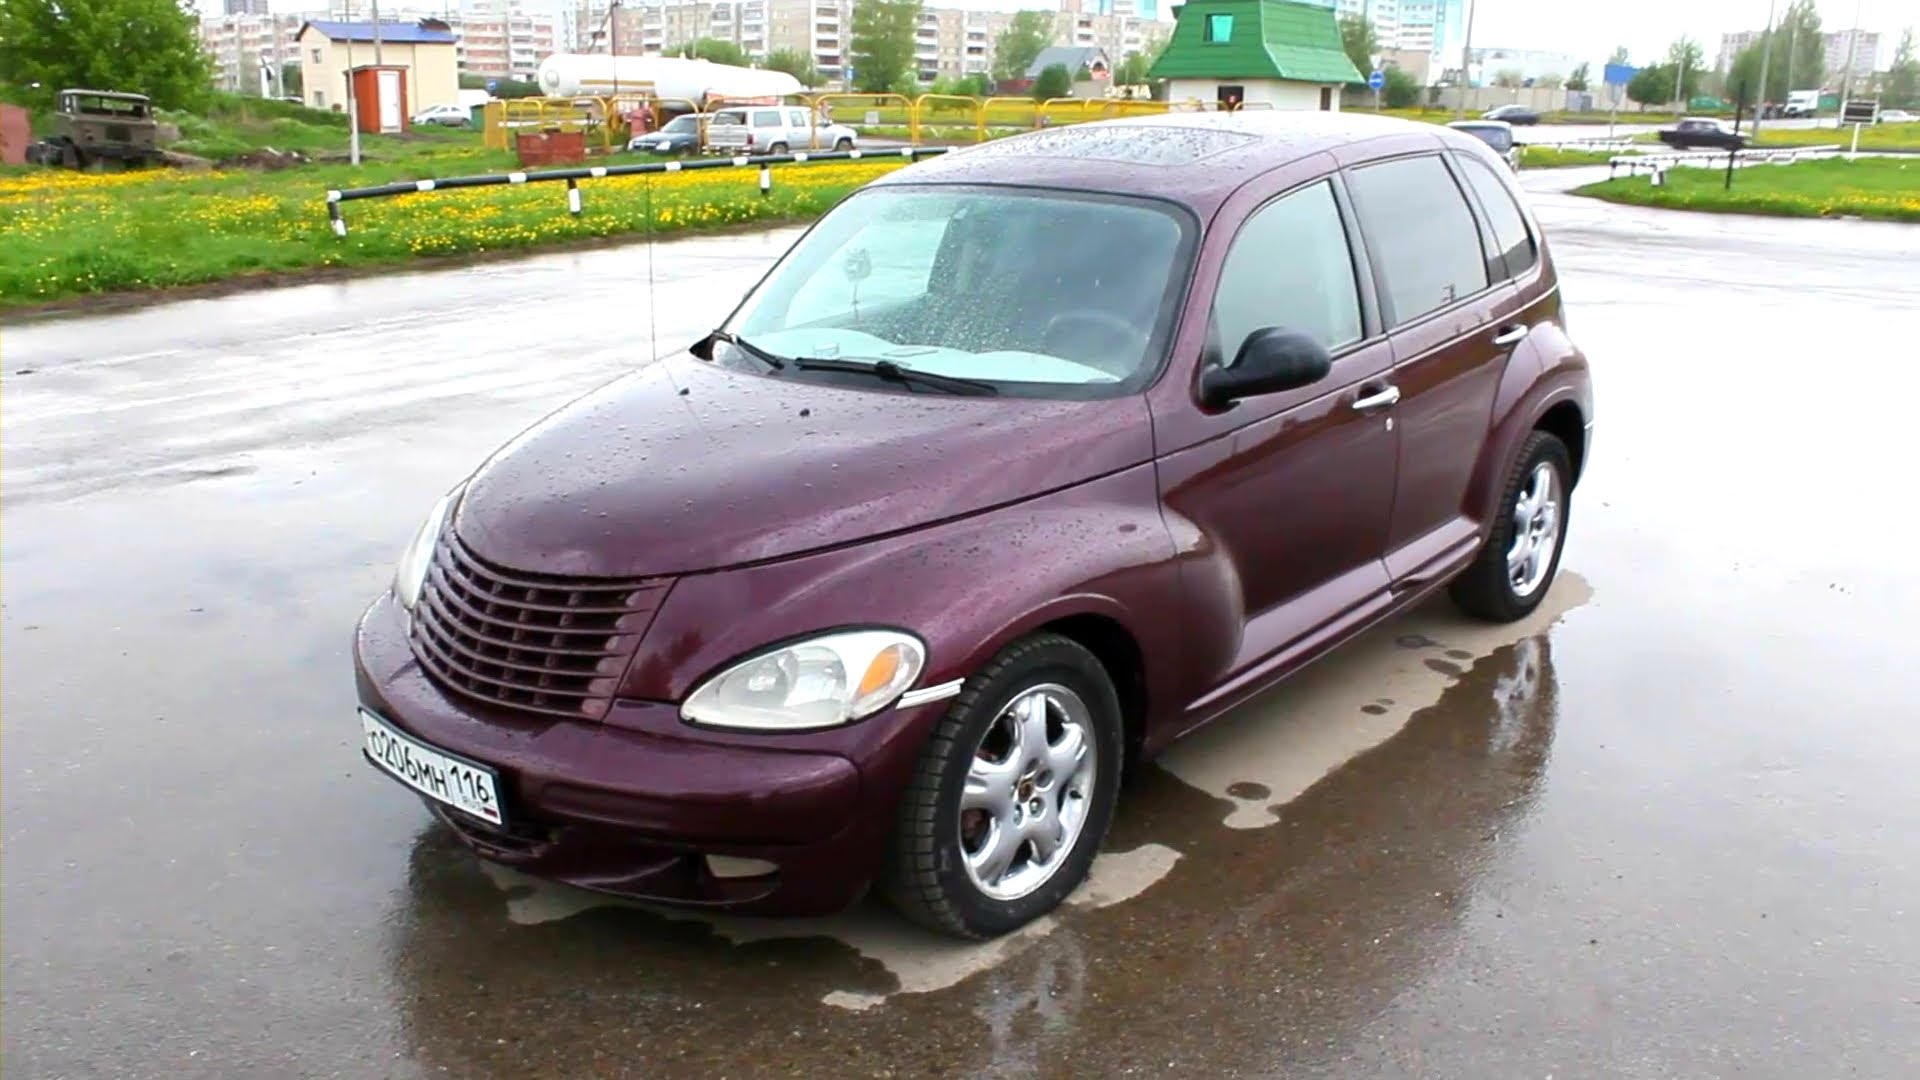 http://high-street.org/uploads/157_pt_cruiser.jpg